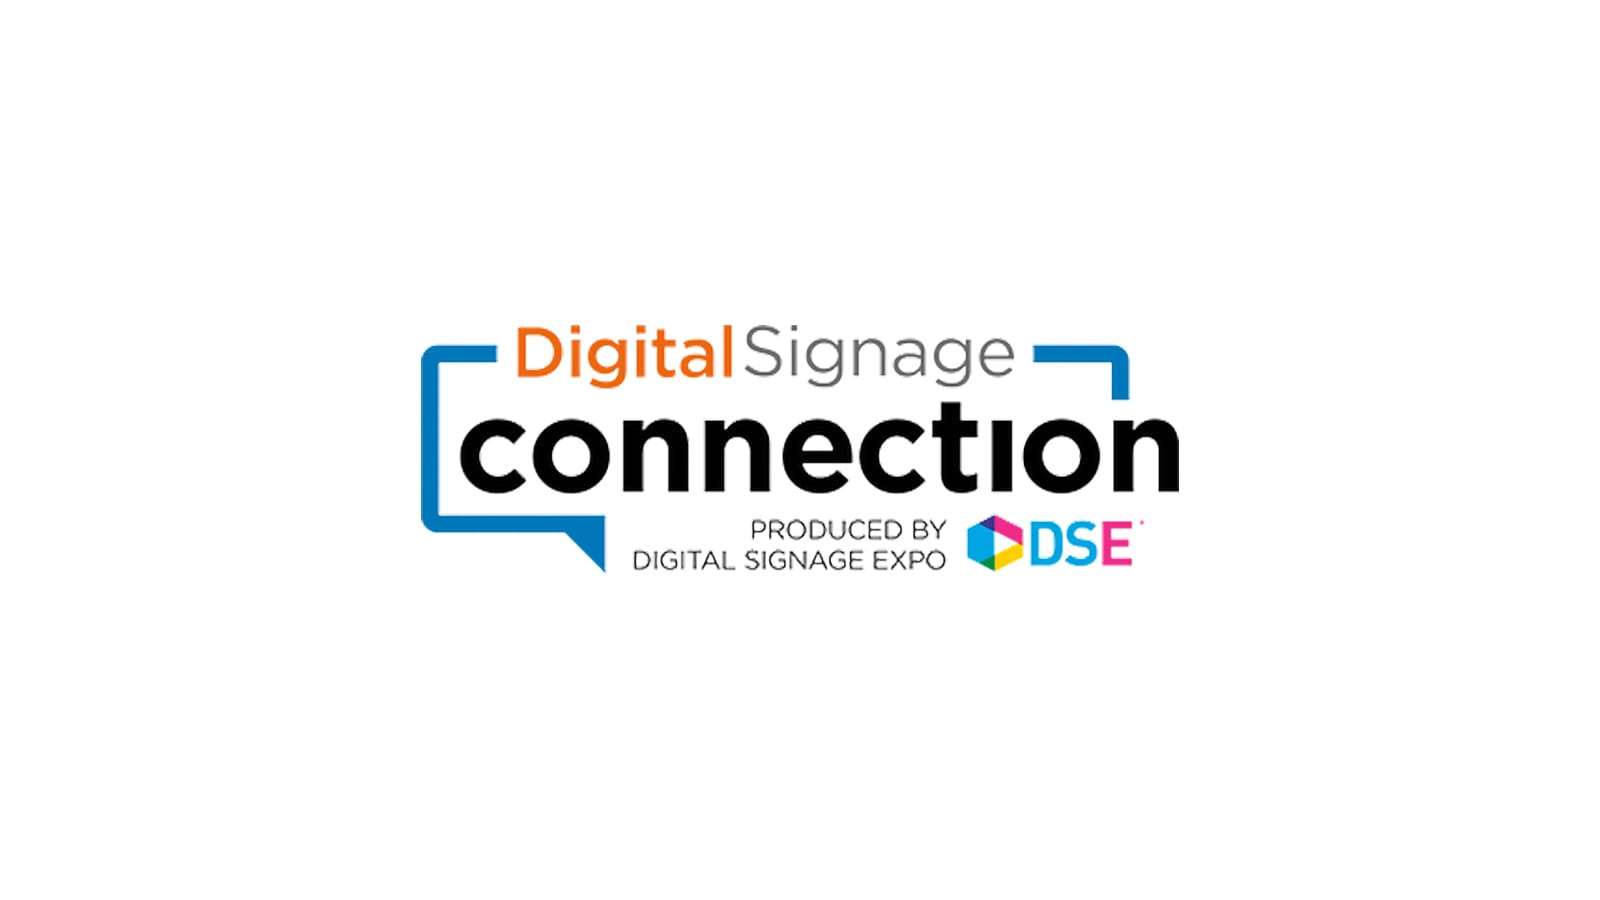 digital-signage-connection